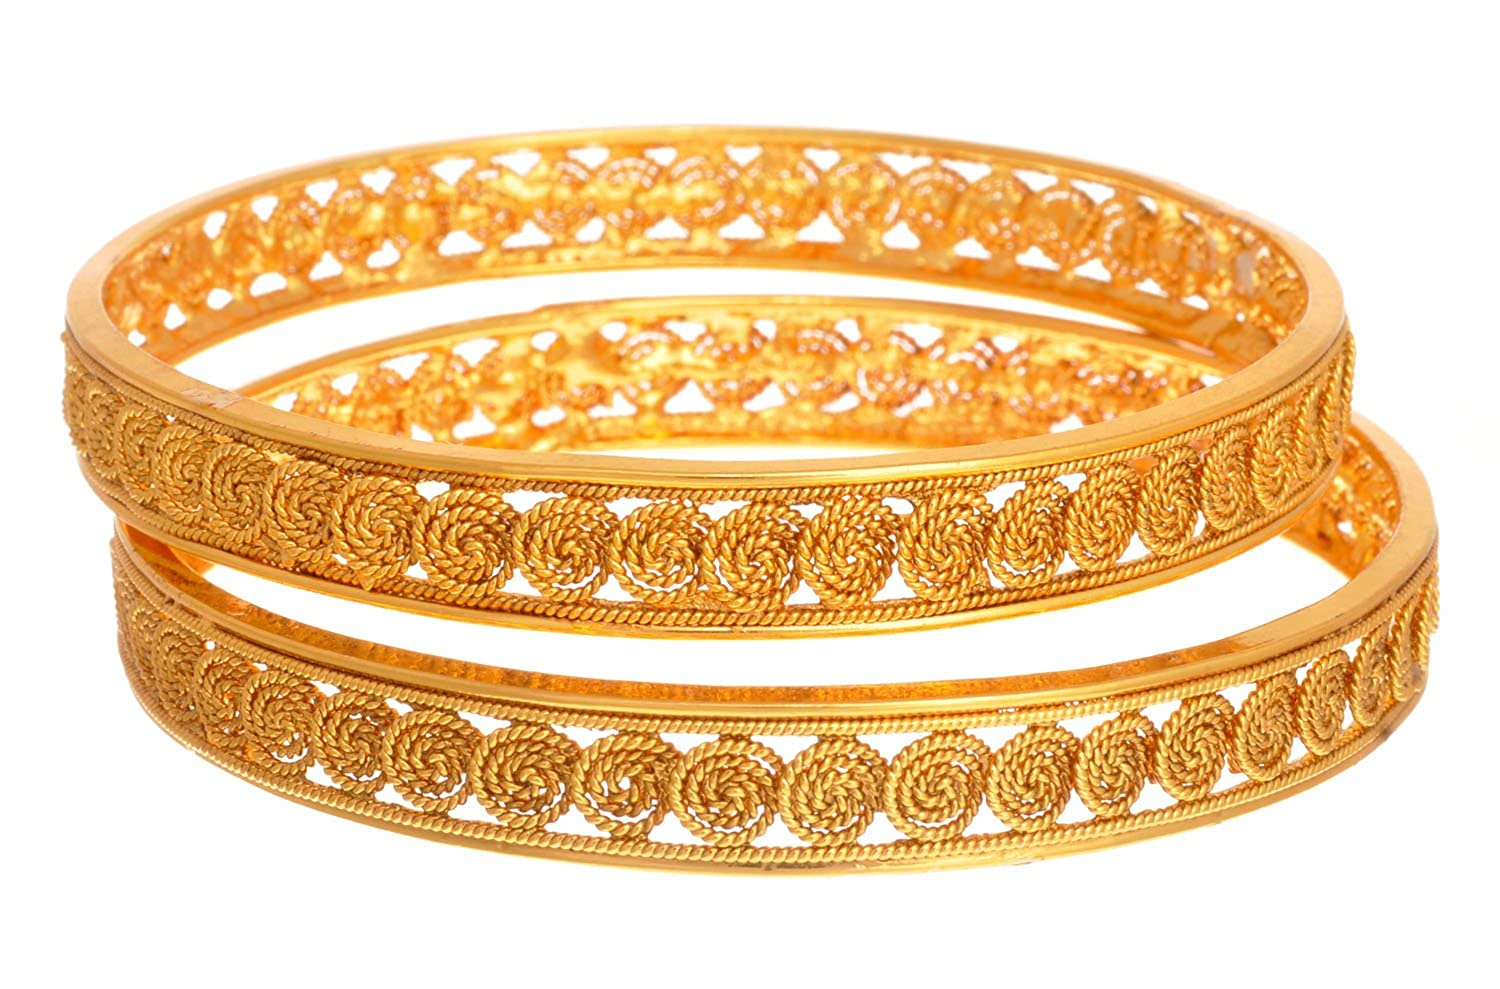 Buy Jfl - Jewellery For Less Traditional Ethnic Stunning Spiral ...